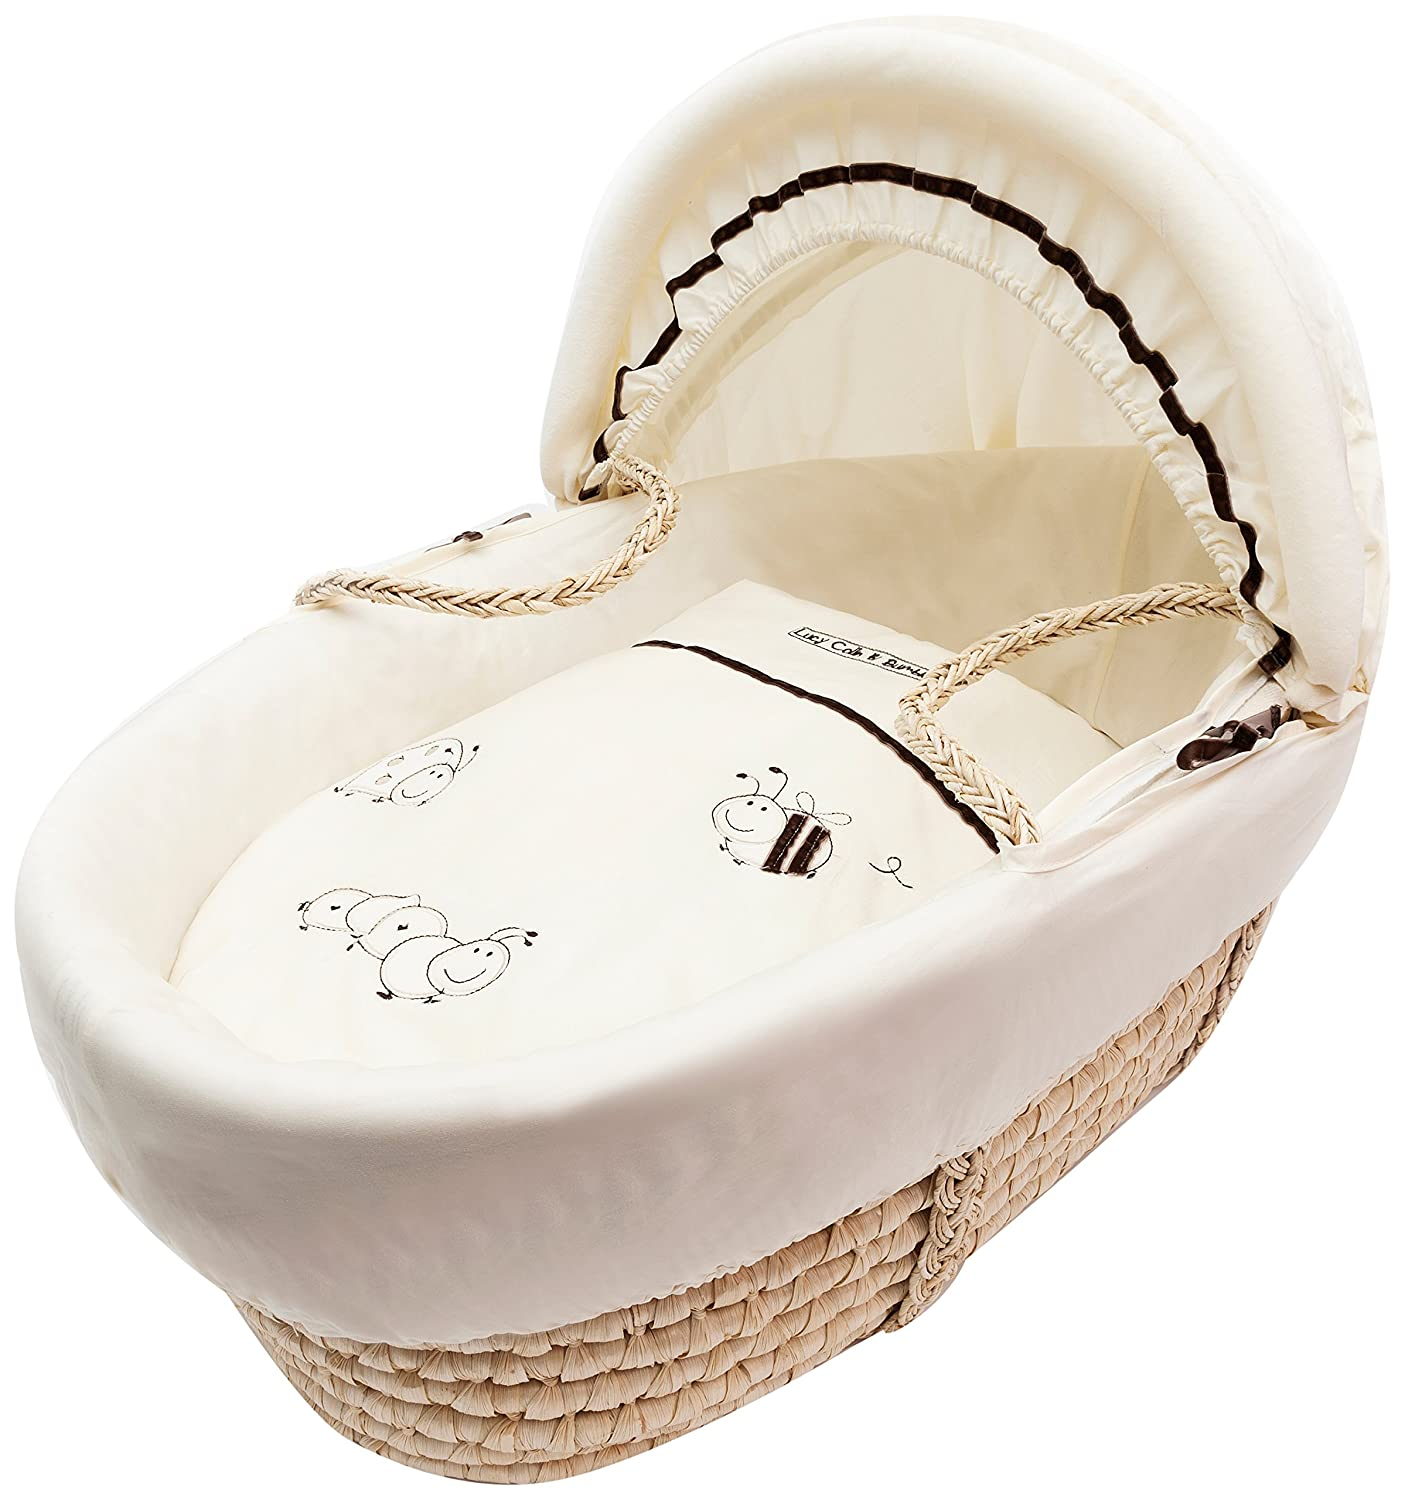 kinder valley daisy boo lucy colin and bumble moses basket cream